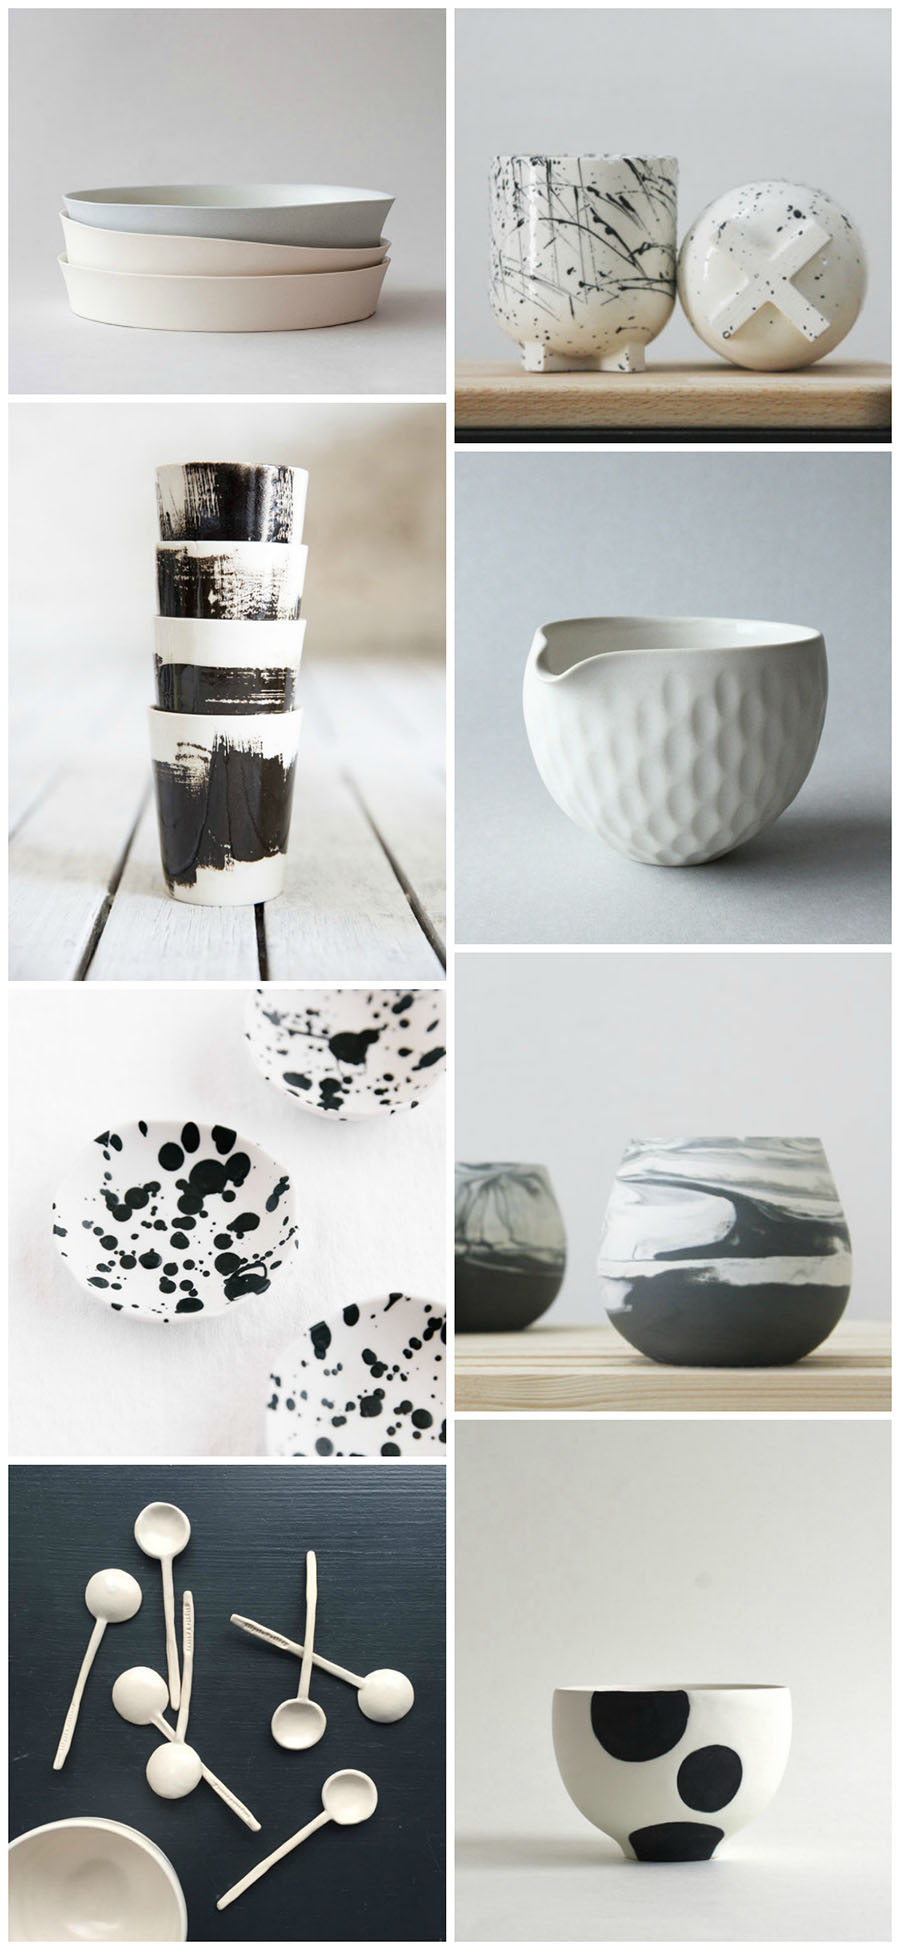 etsy-finds-ceramics